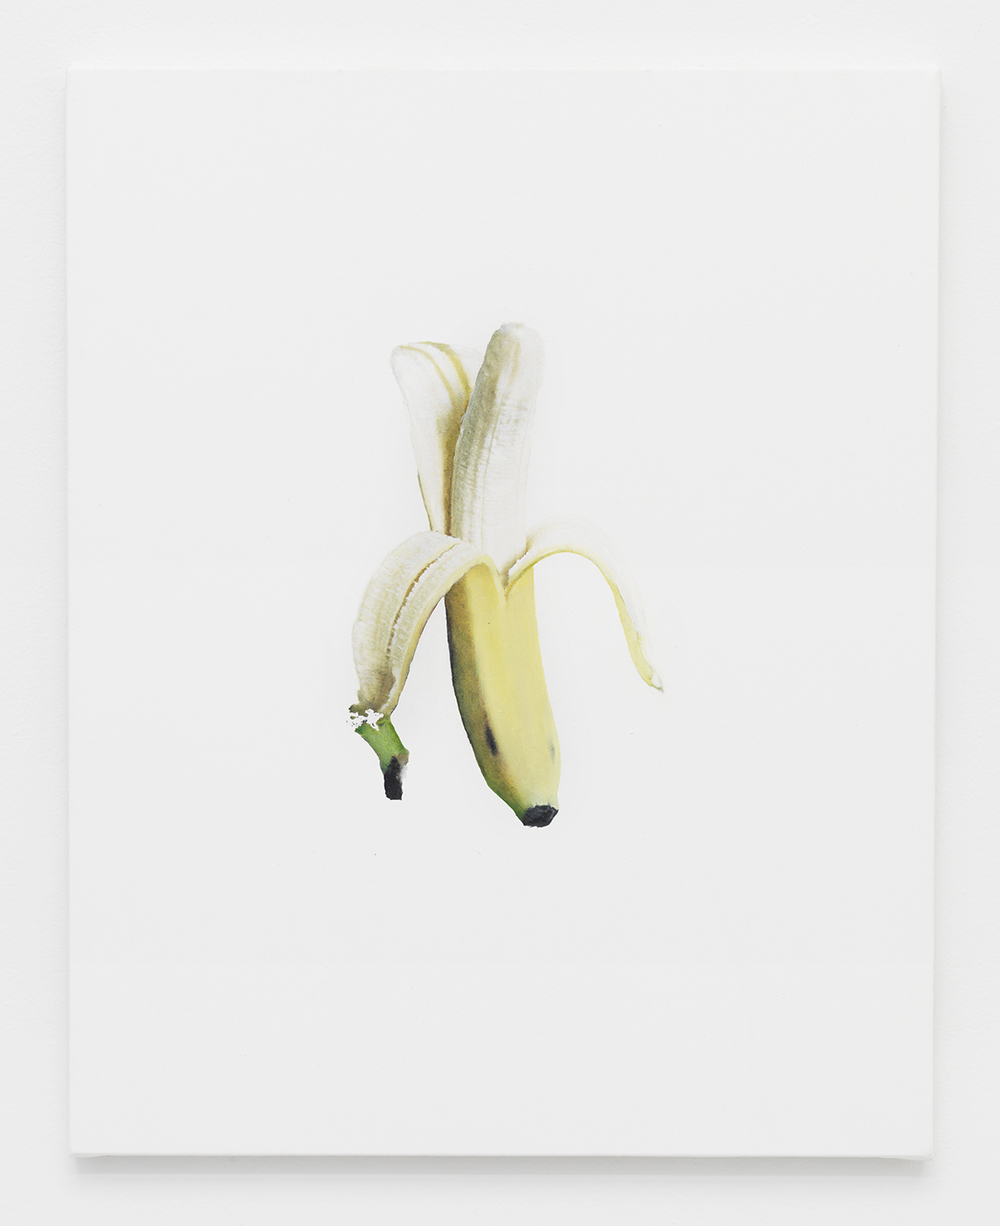 Banana Jpeg 1  2014  Oil and Epson Ultrachrome inkjet on Epson synthetic material  20 x 16 inches